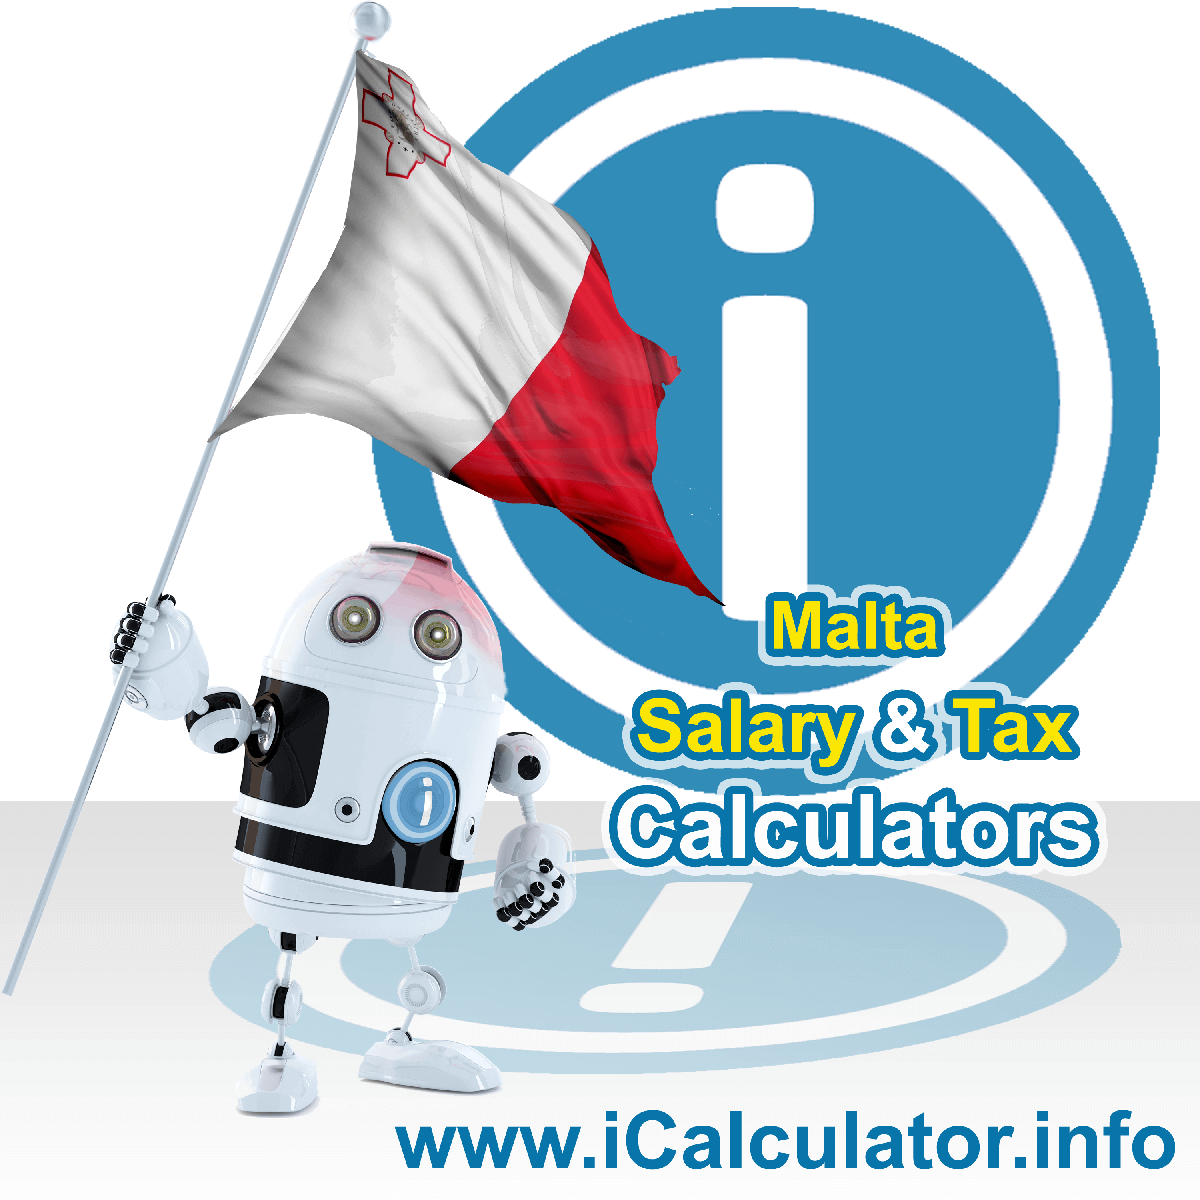 Malta Tax Calculator. This image shows the Malta flag and information relating to the tax formula for the Malta Salary Calculator